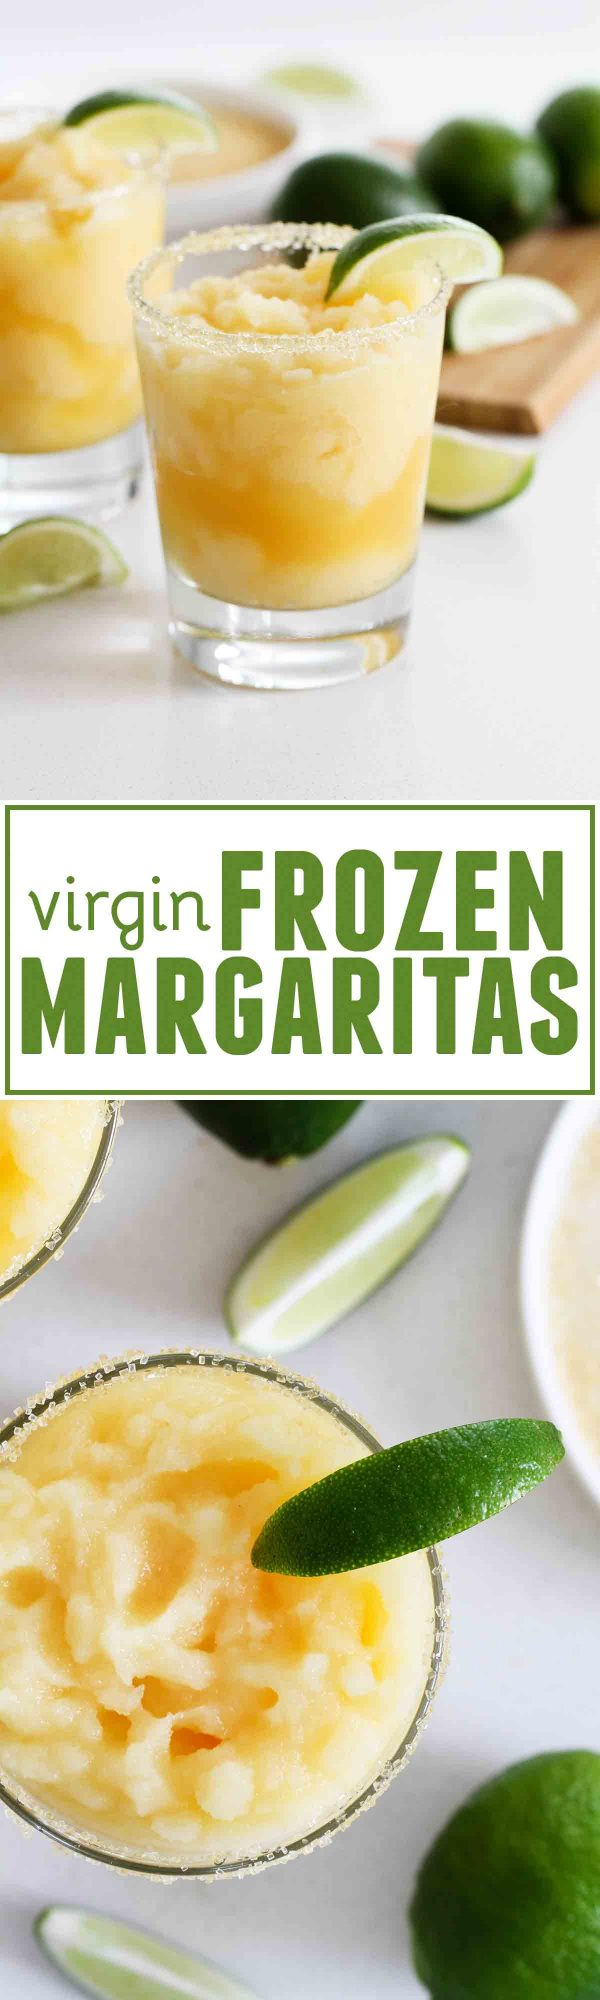 >A little bit tart, a little bit sour, and a little bit sweet, these Virgin Frozen Margaritas come together in just minutes and are super family friendly!